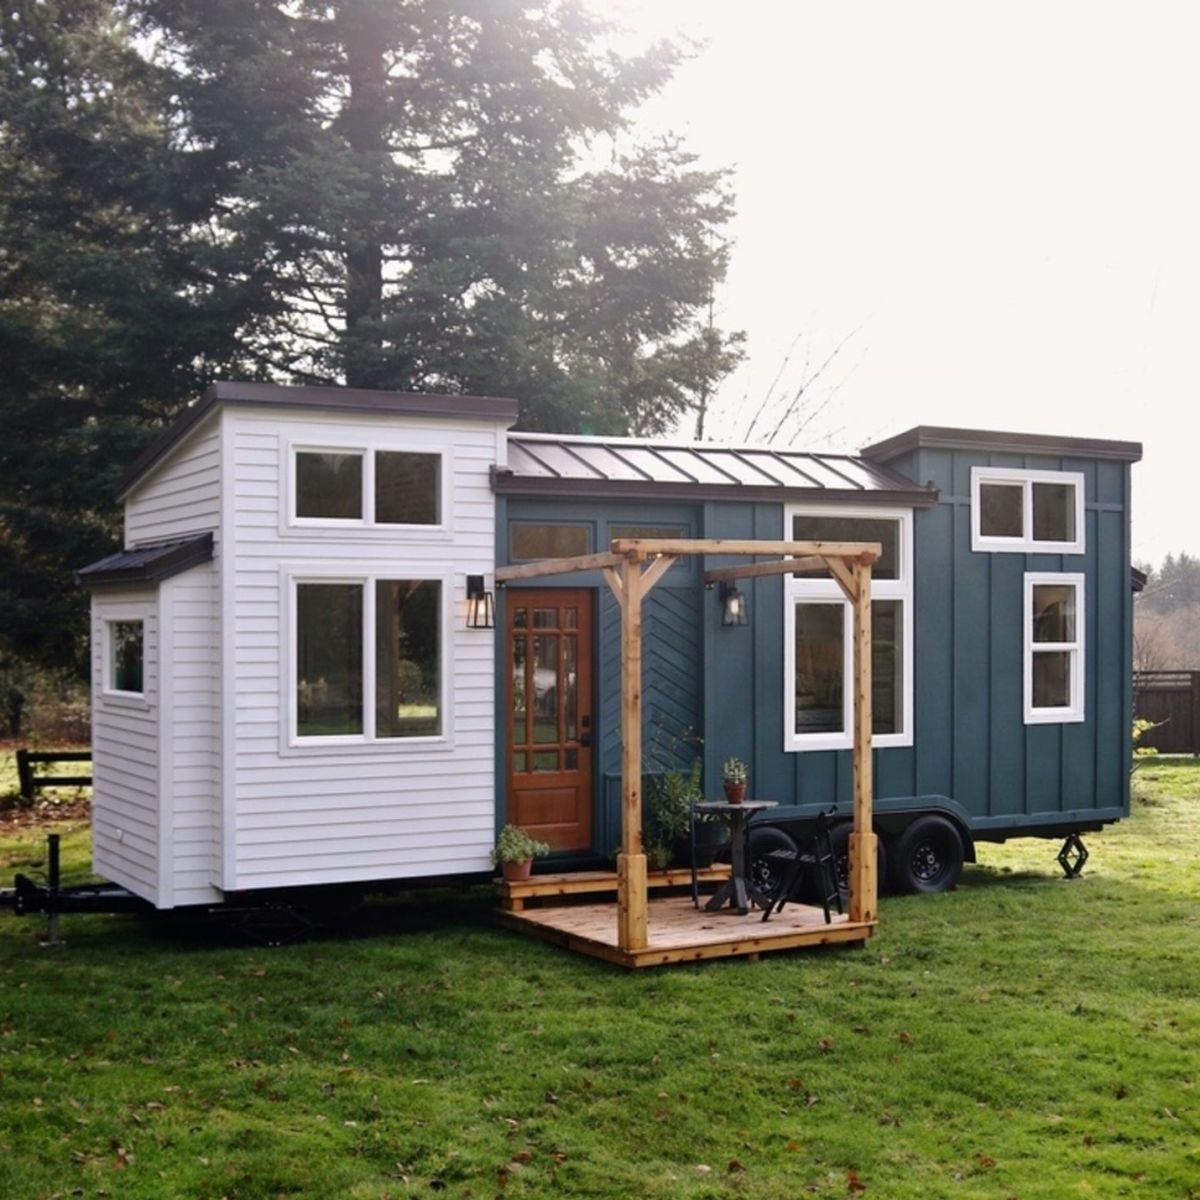 Pacific Getaway Tiny House for Rent in Battle Ground